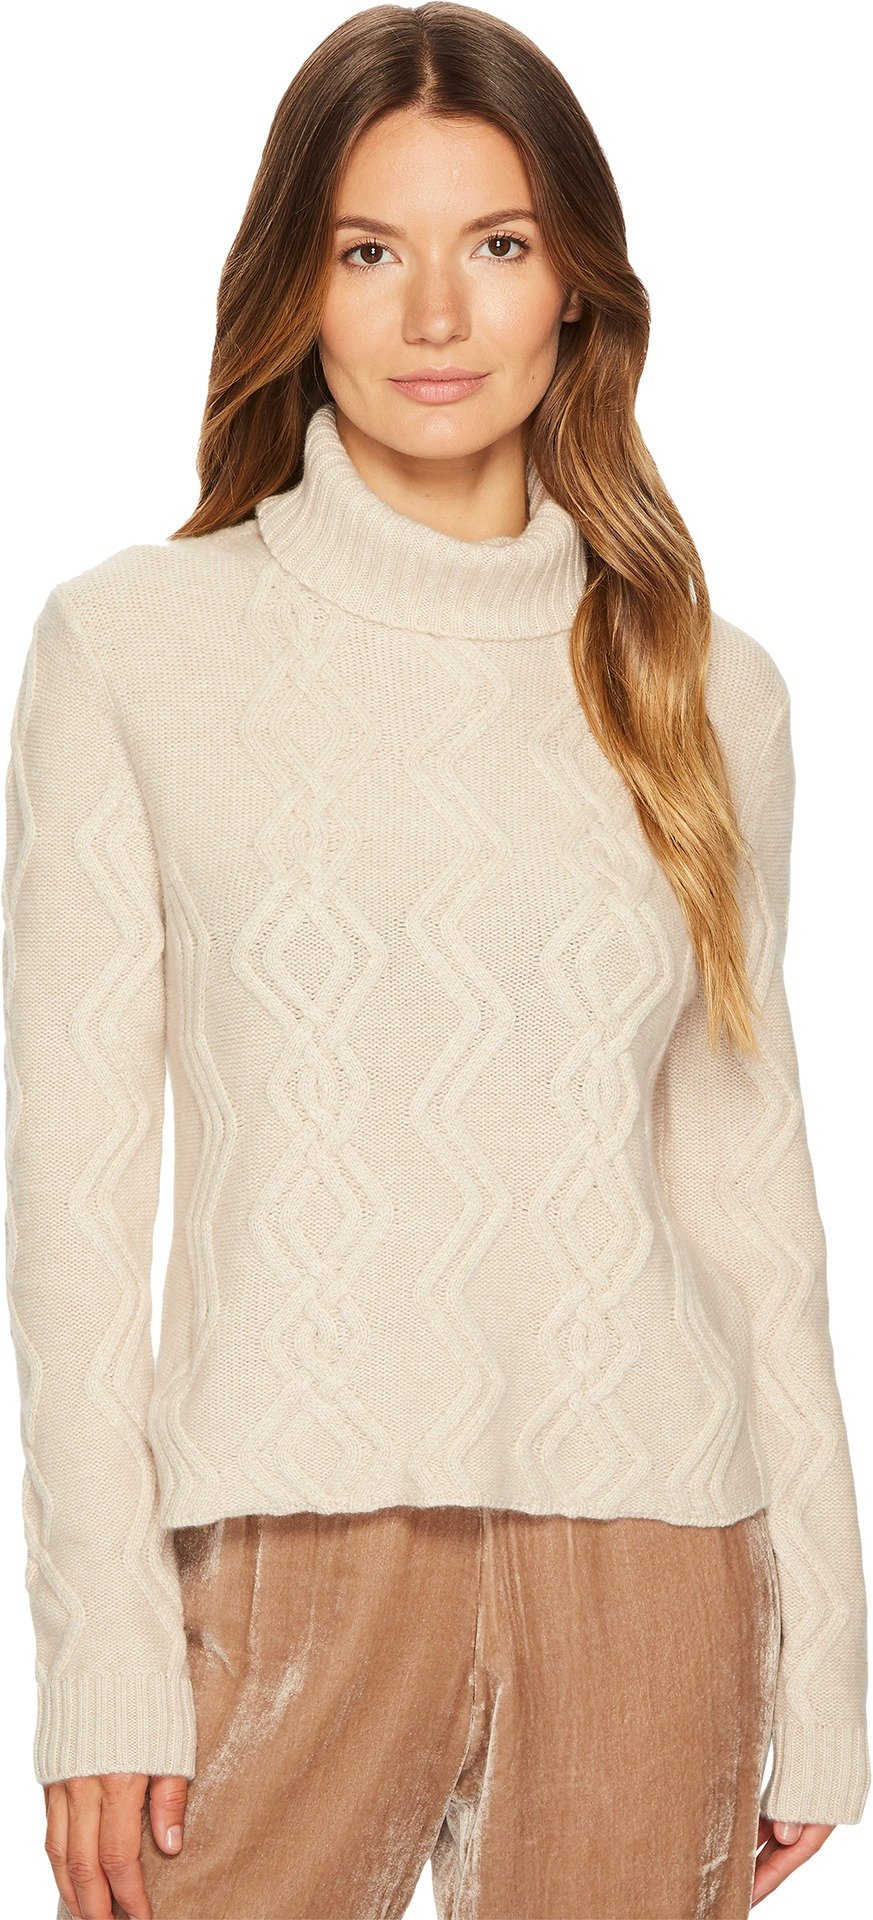 Cashmere In Love Women's Tess Cropped Cable Knit Pullover Wheat Medium